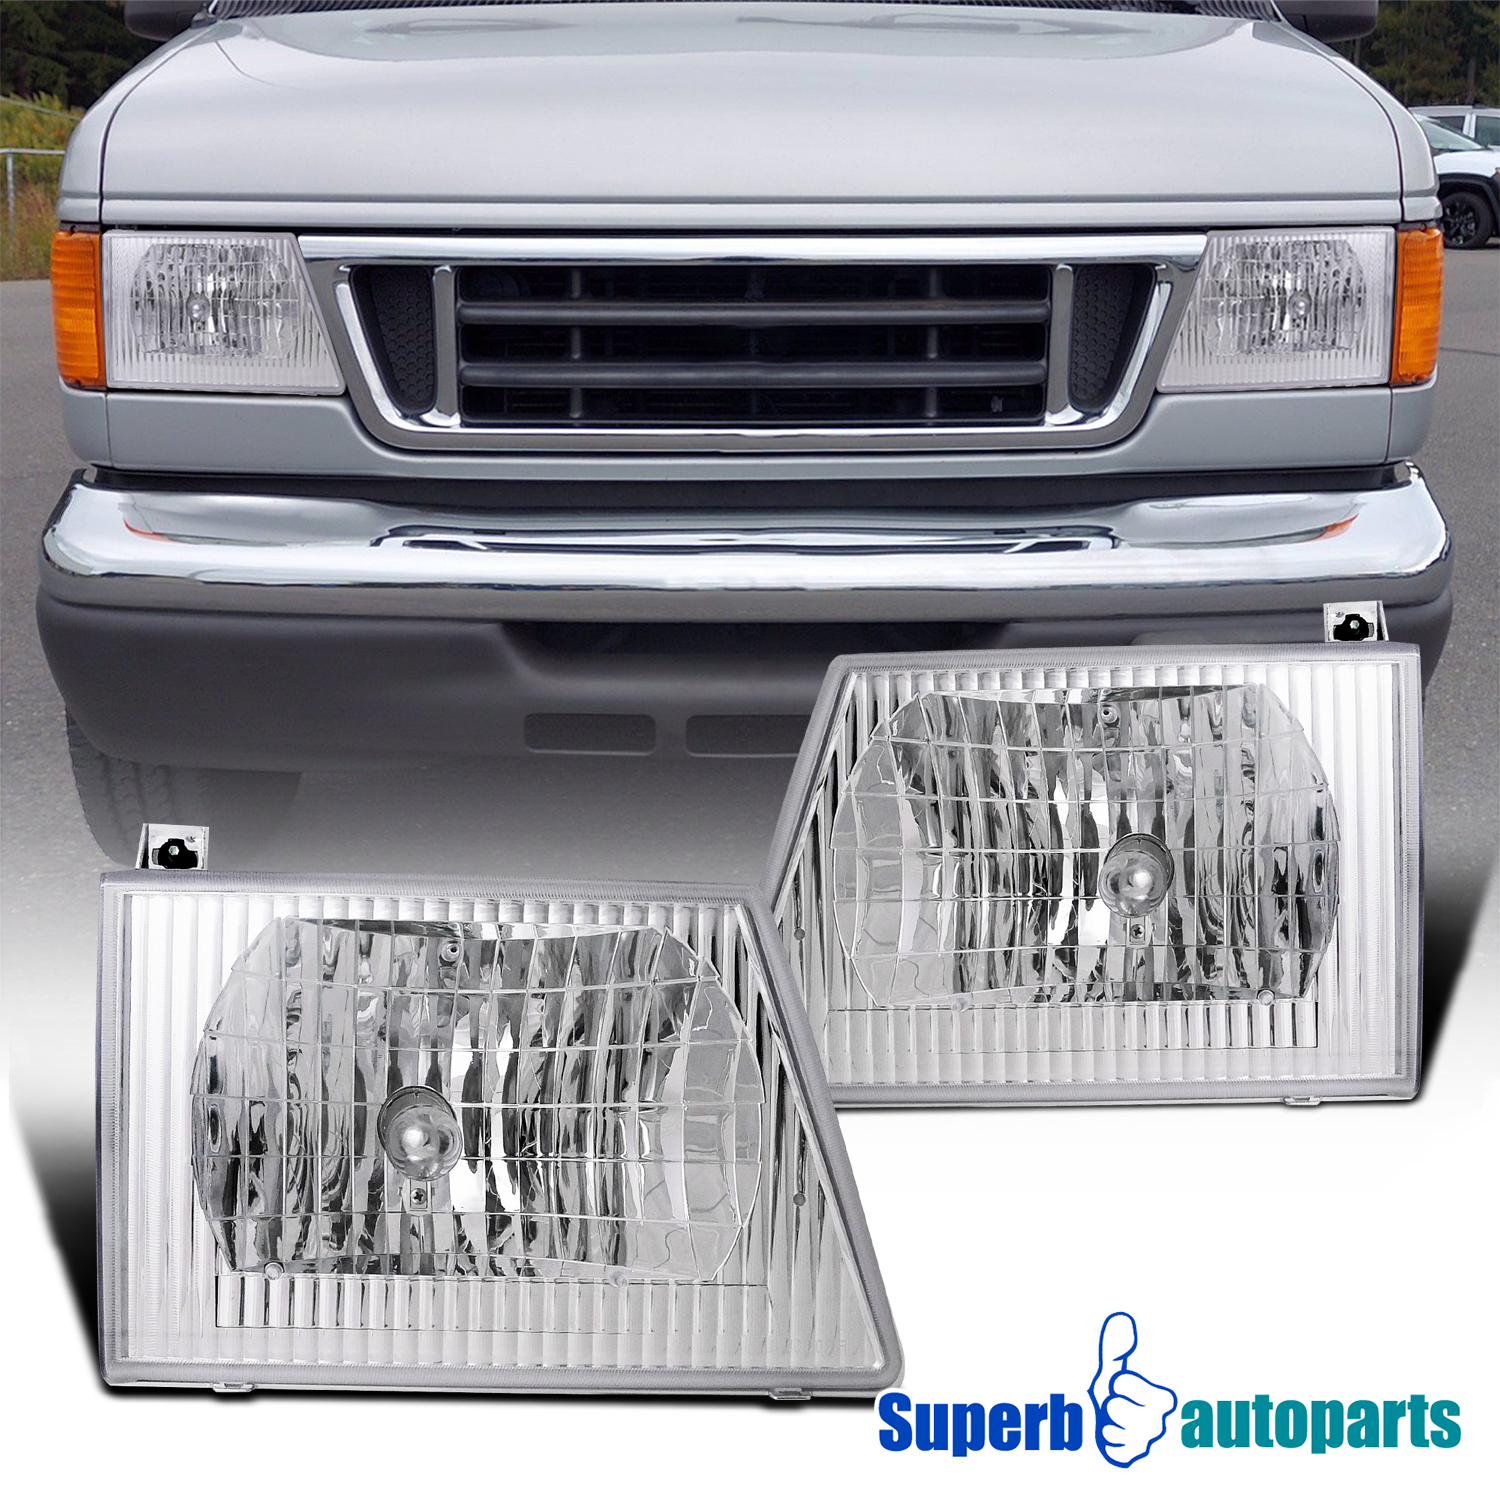 Details about For 1992-2006 Ford E150 E250 E350 E450 Econoline Van Euro  Headlights Lamps Clear